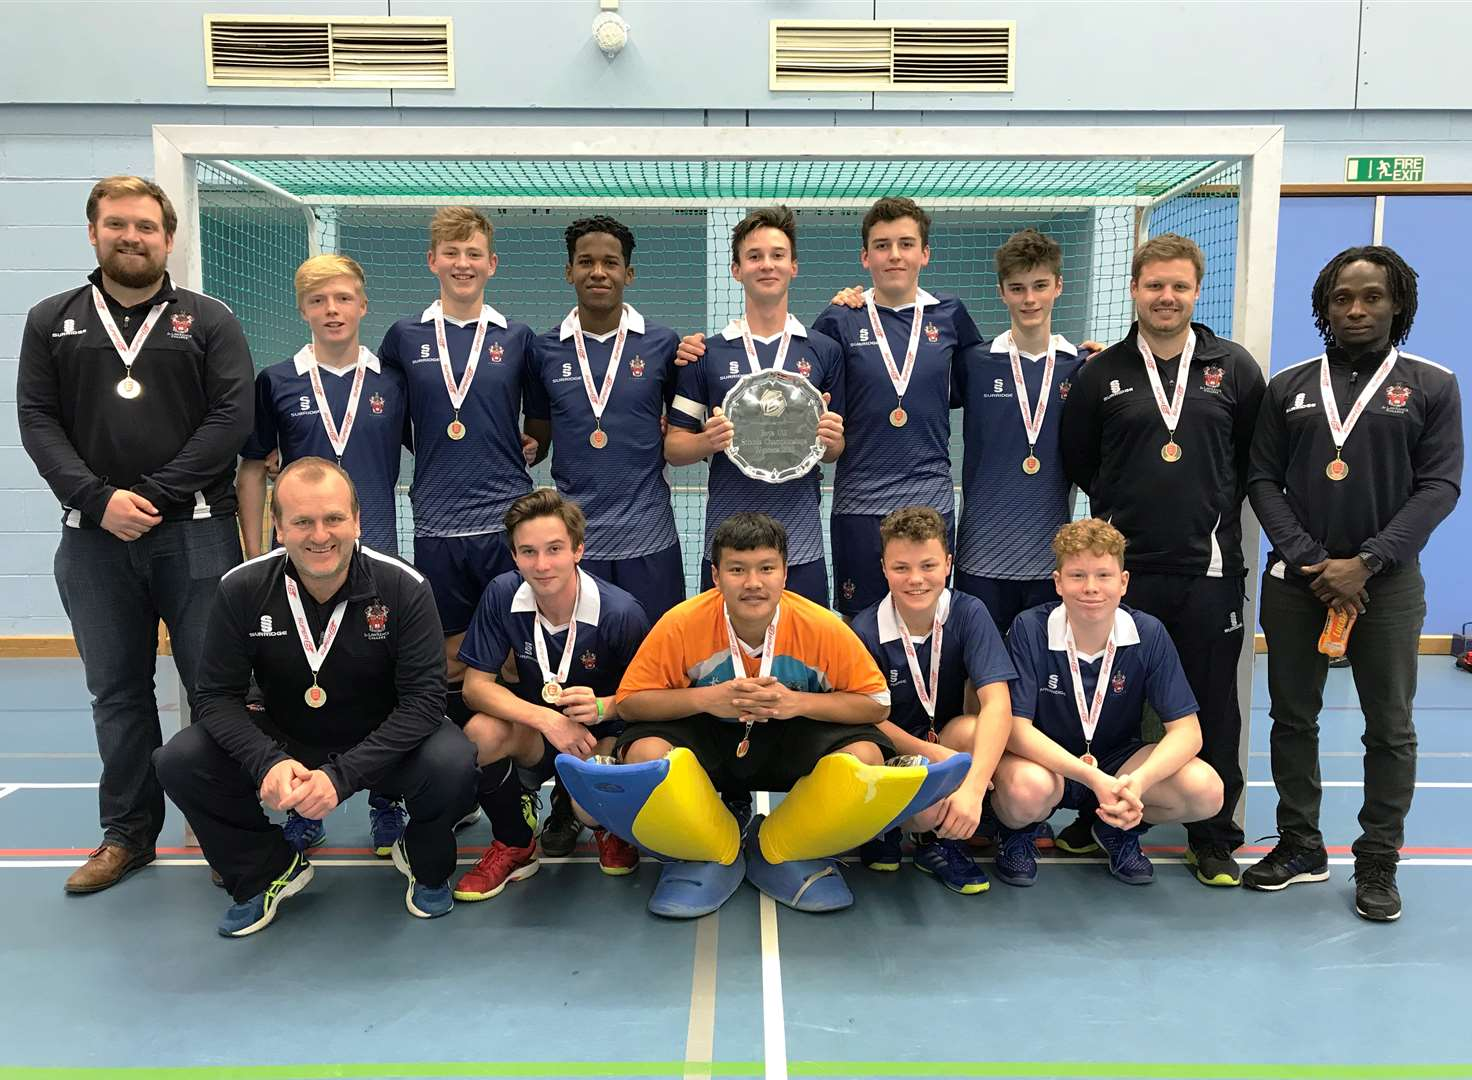 School's hockey team success